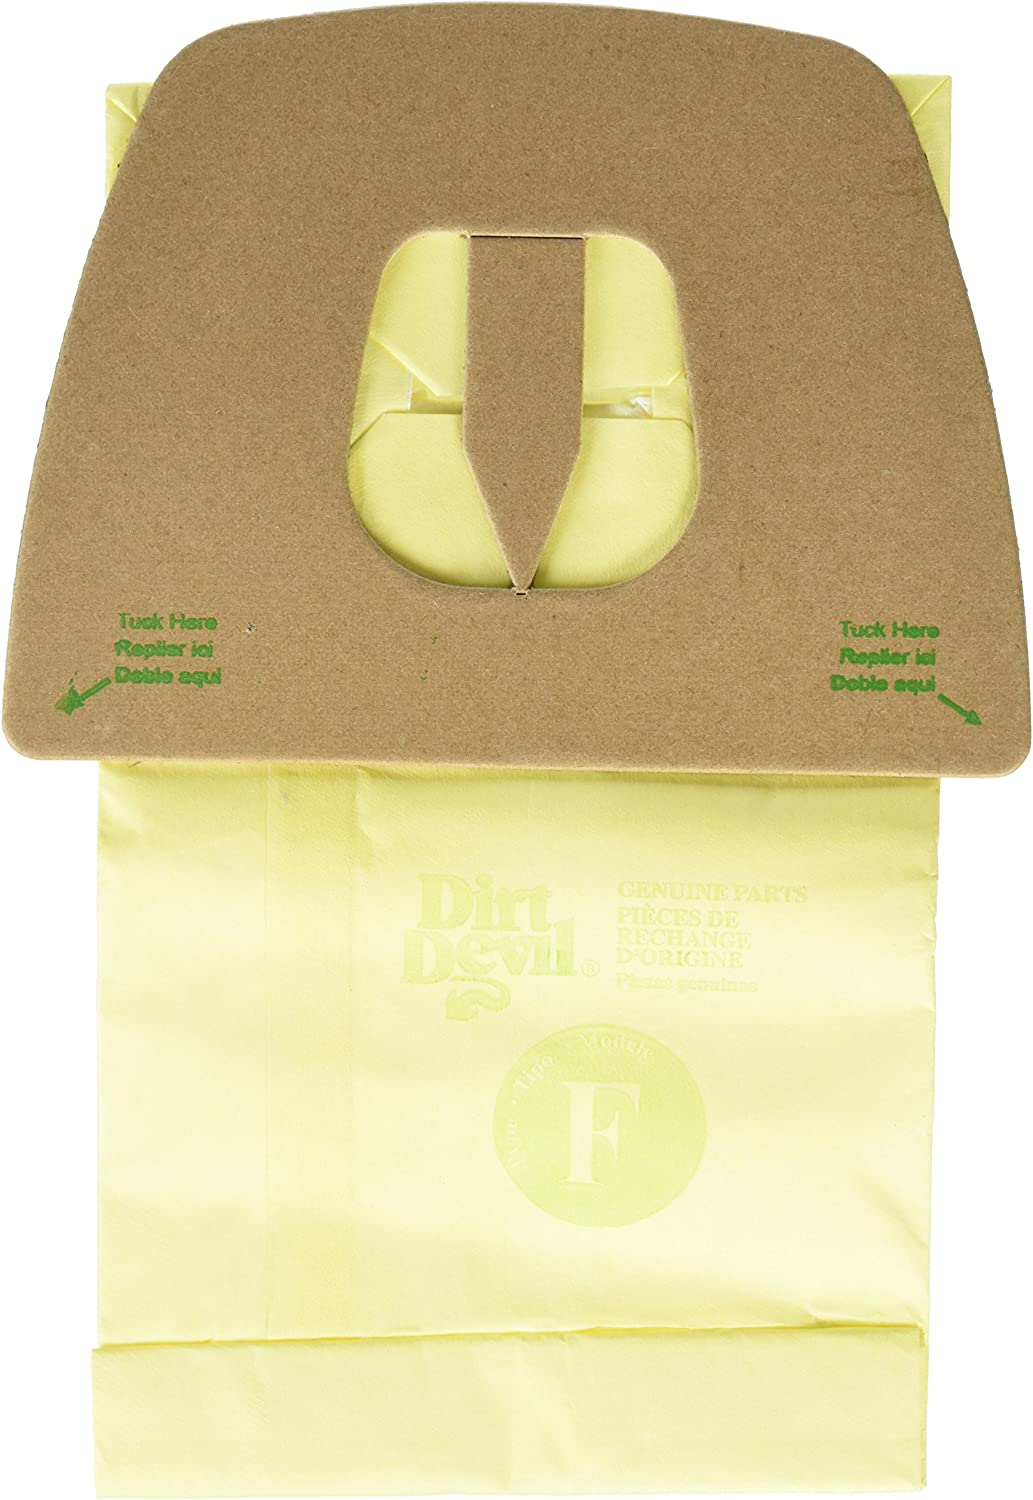 Dirt Devil Type F Microfresh Vacuum Bags (3-Pack) Plus Filter, 3300480001